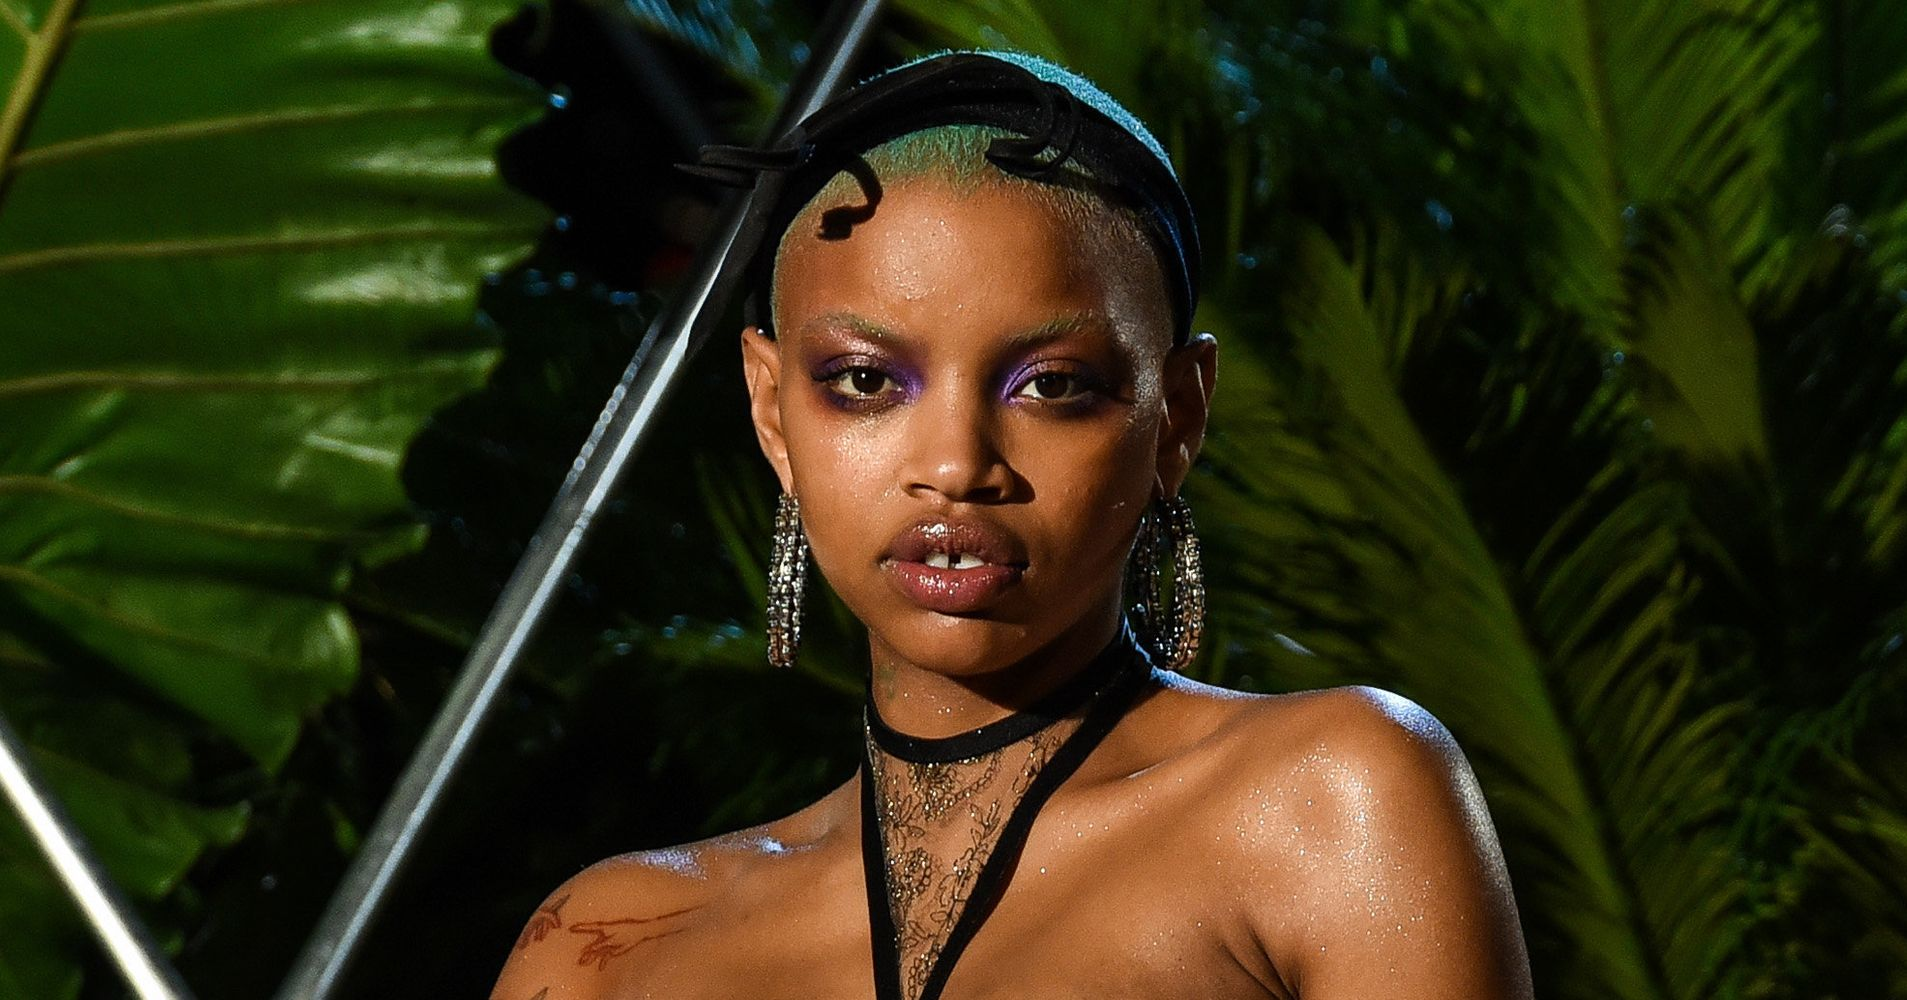 Pregnant Model Slick Woods Owned The Runway At Rihanna's Savage X Fenty Show | HuffPost